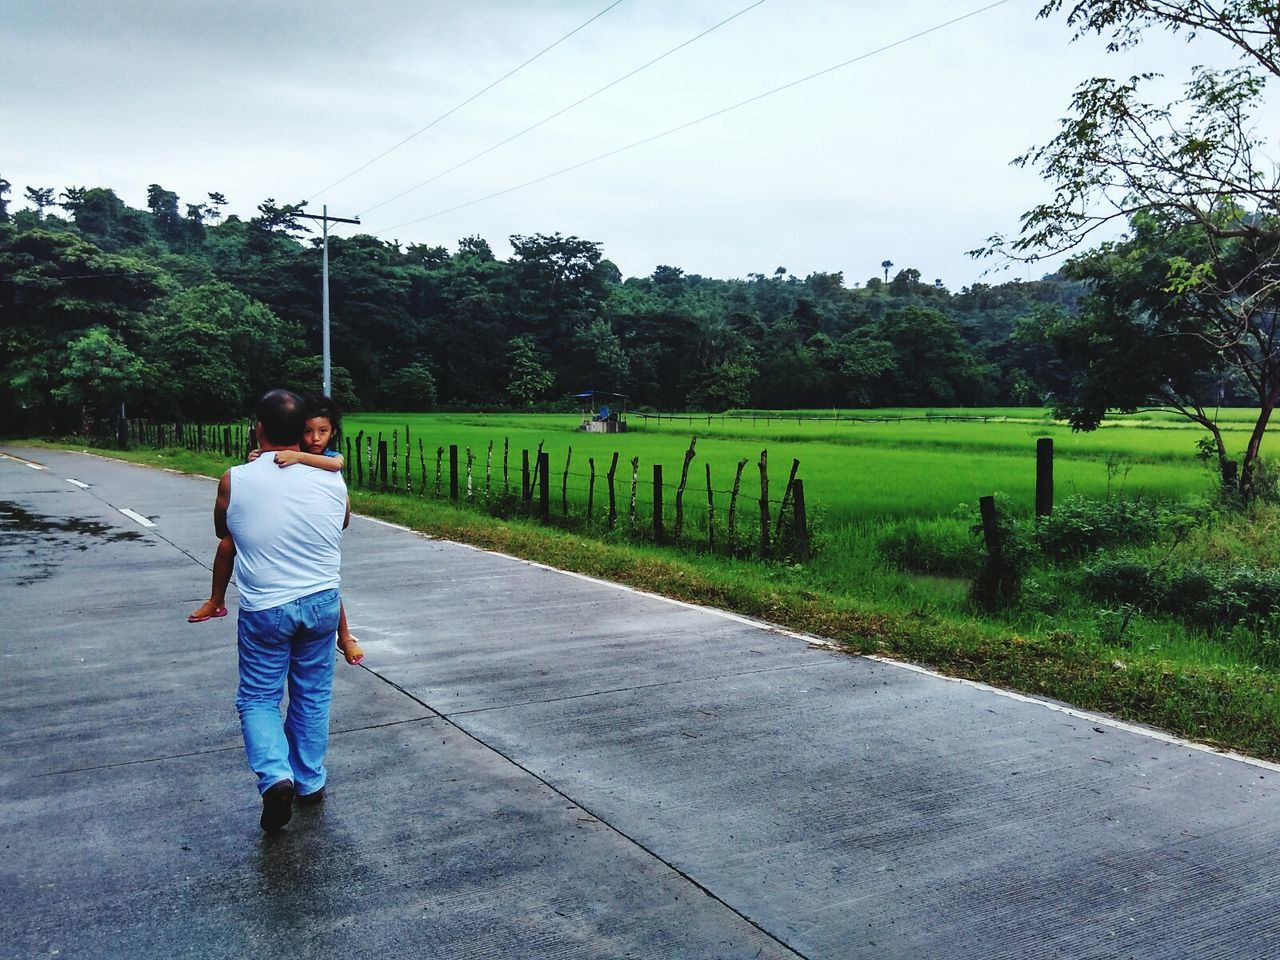 tree, full length, real people, rear view, one person, day, casual clothing, outdoors, nature, walking, sky, road, growth, men, beauty in nature, grass, people